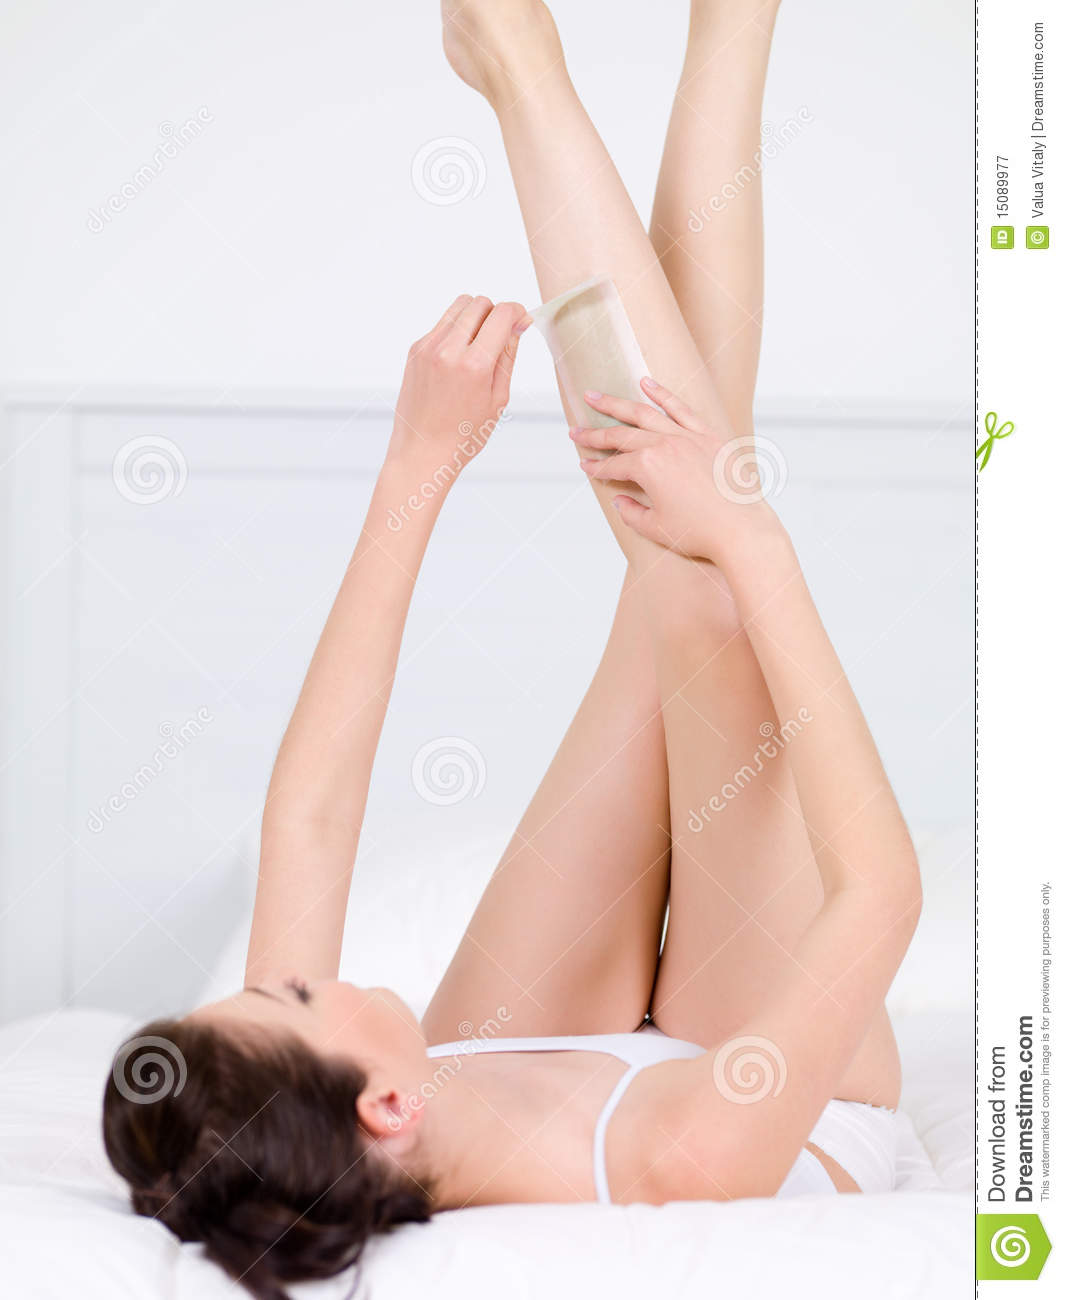 Depilation of woman s legs by waxing